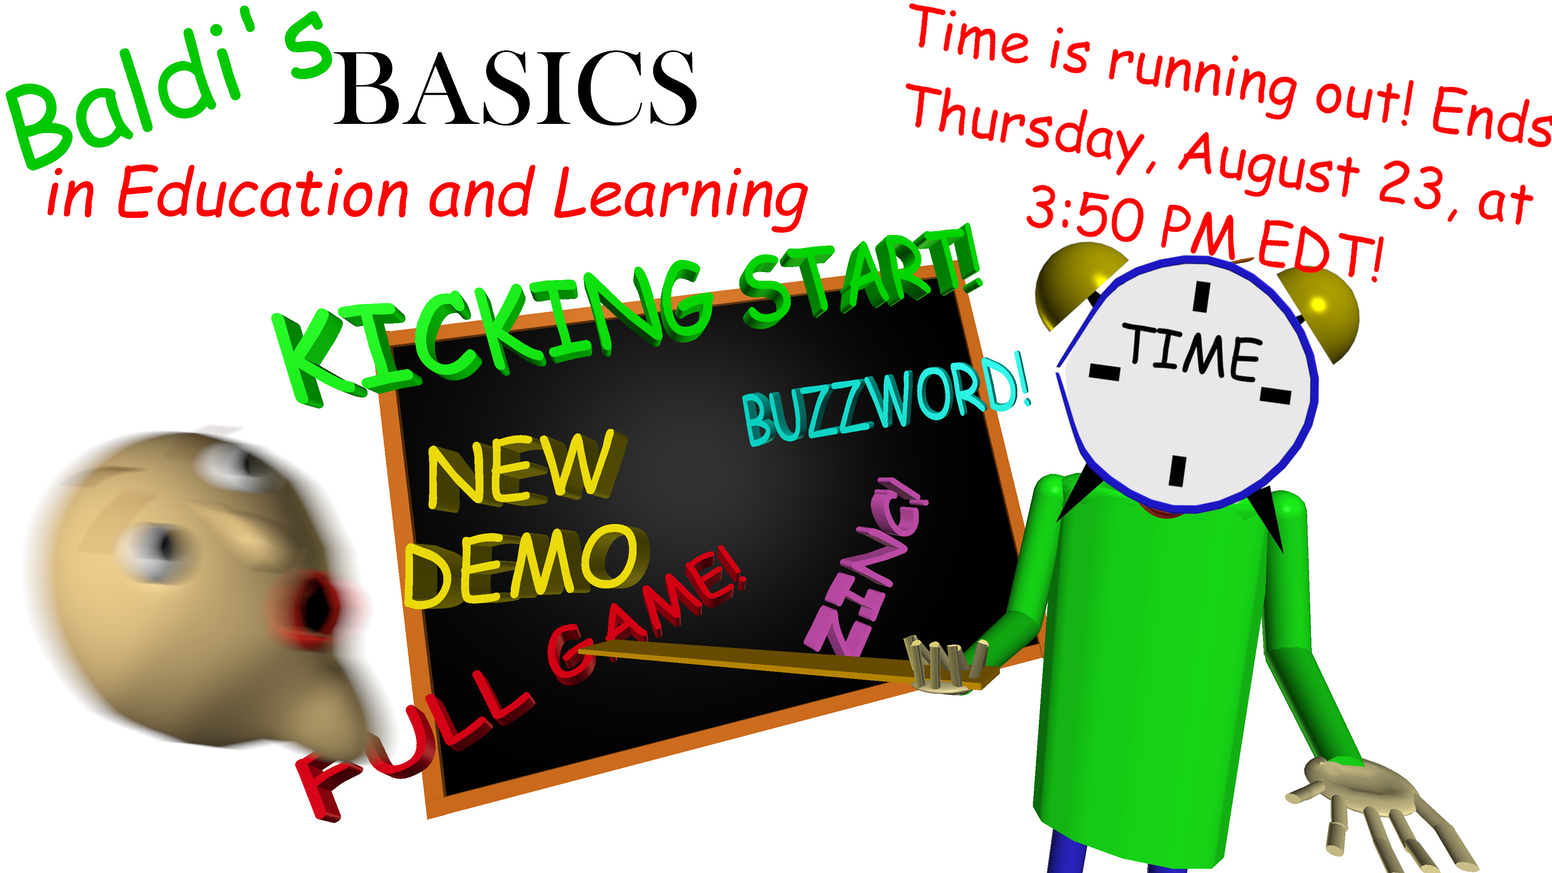 Baldi's Basics in Education and Learning - Full game! by Micah